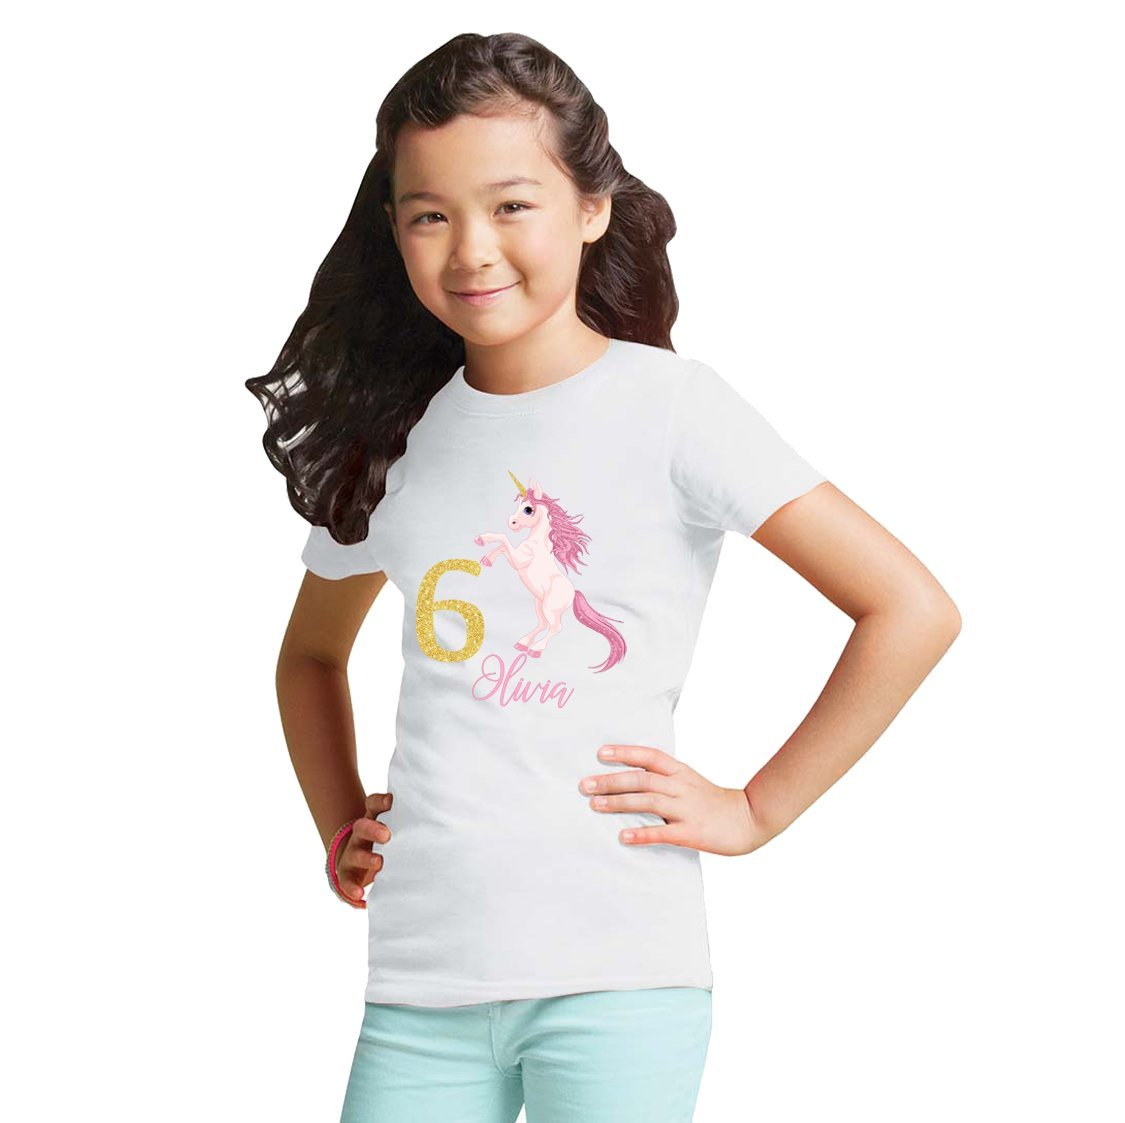 NanyCrafts' Personalized Unicorn Birthday Gold Glitter Girl's Shirt 9/10Y White by NanyCrafts (Image #1)